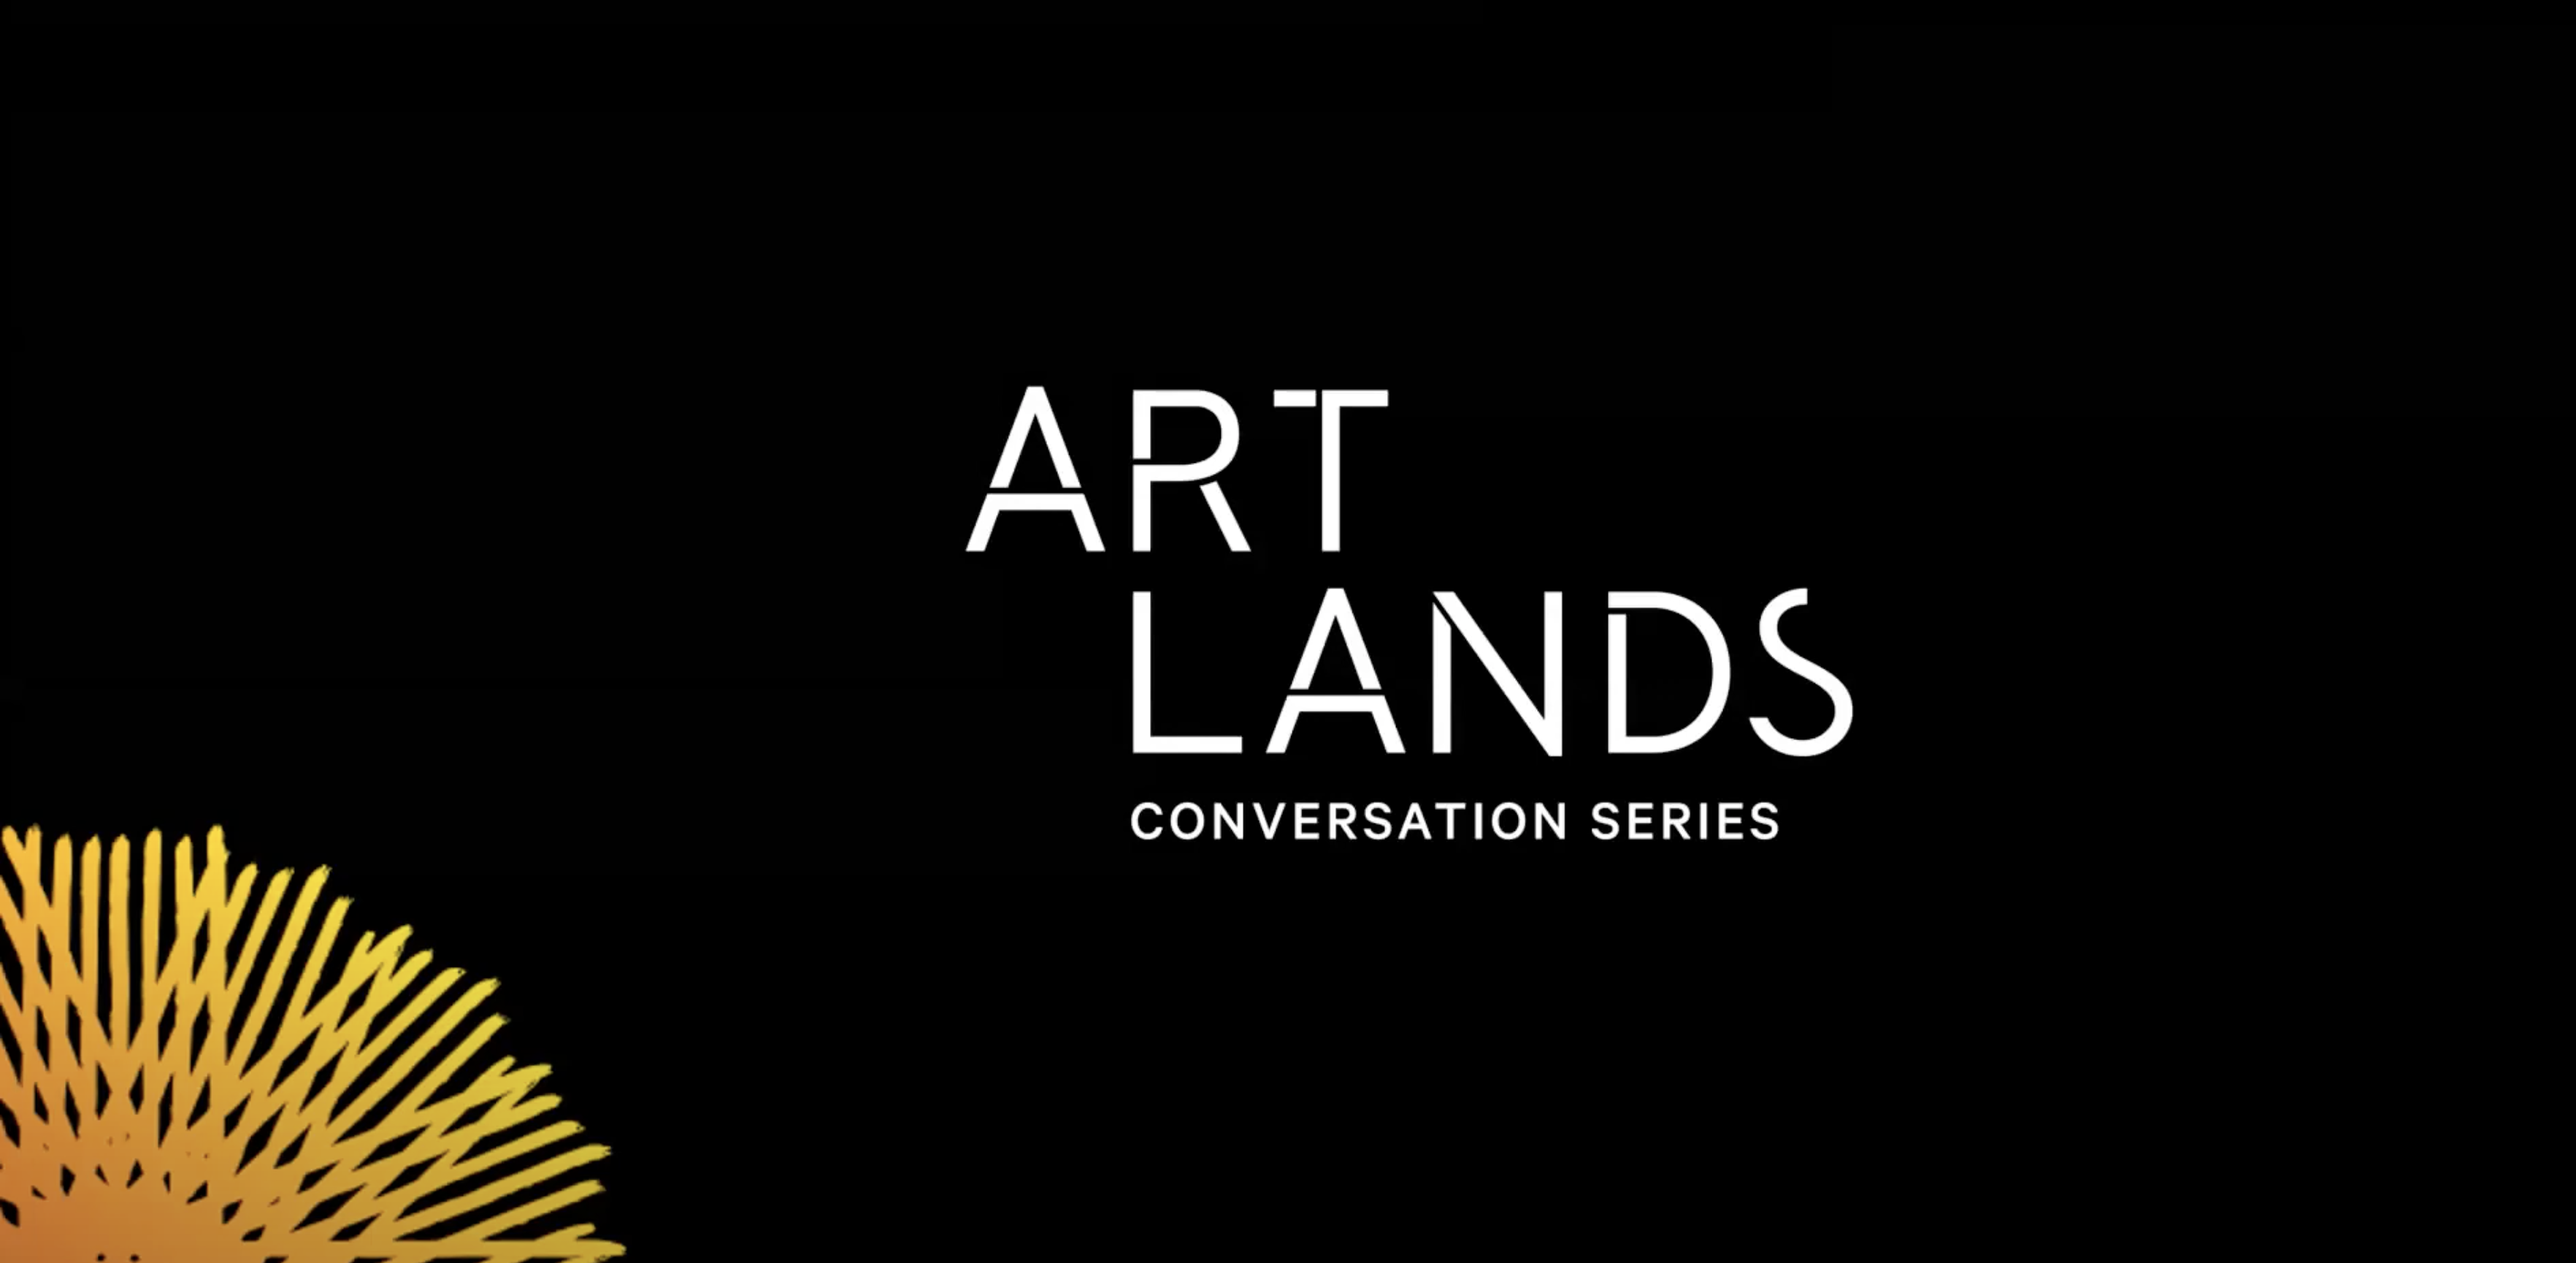 Artlands Conversation #3: Connection in Times of Isolation